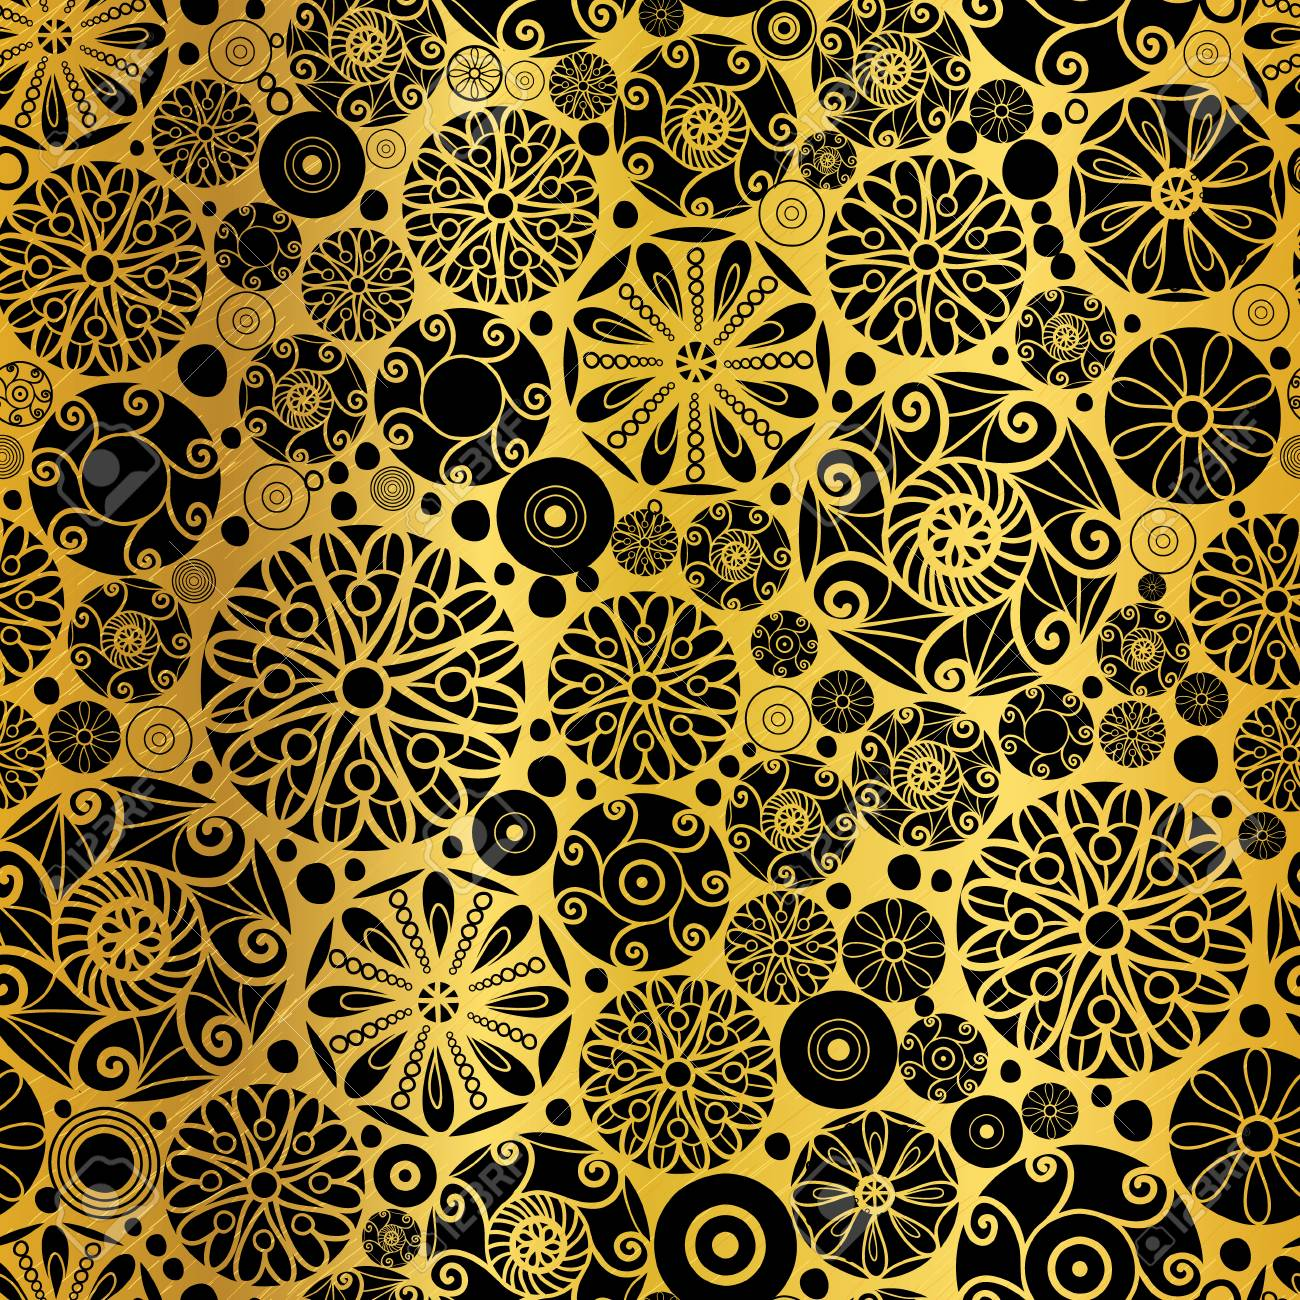 Vector Black Gold Abstract Doodle Circles Seamless Pattern Background